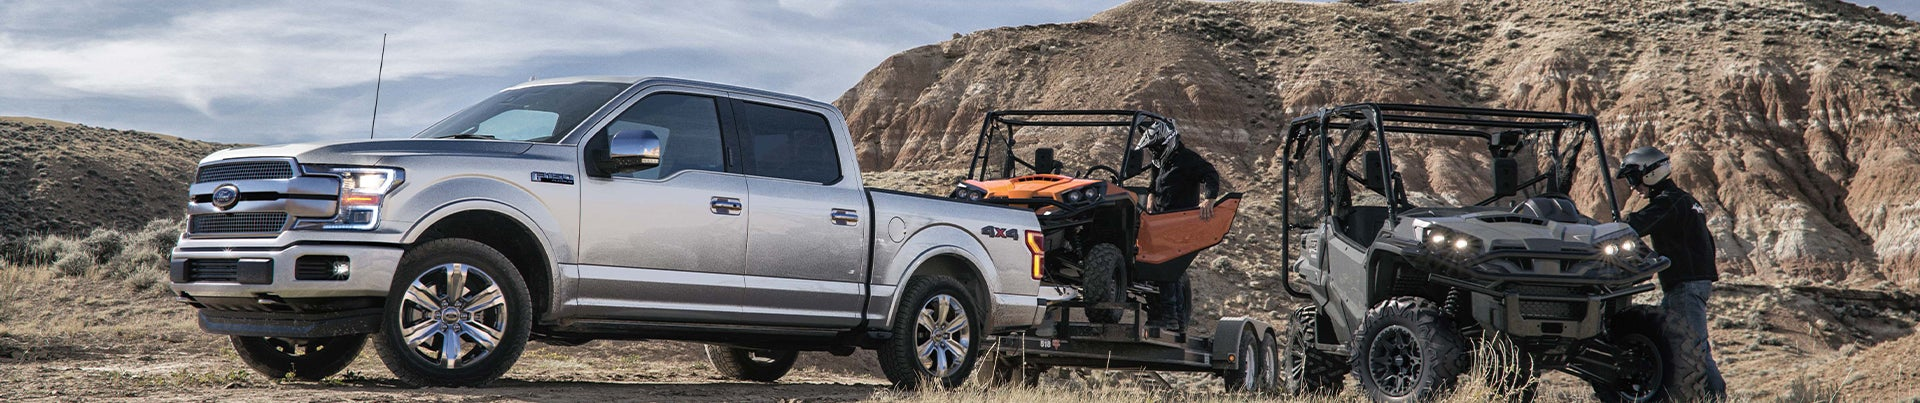 2019 Ford F-150 | Bill McCandless Ford, My Ford Dealership